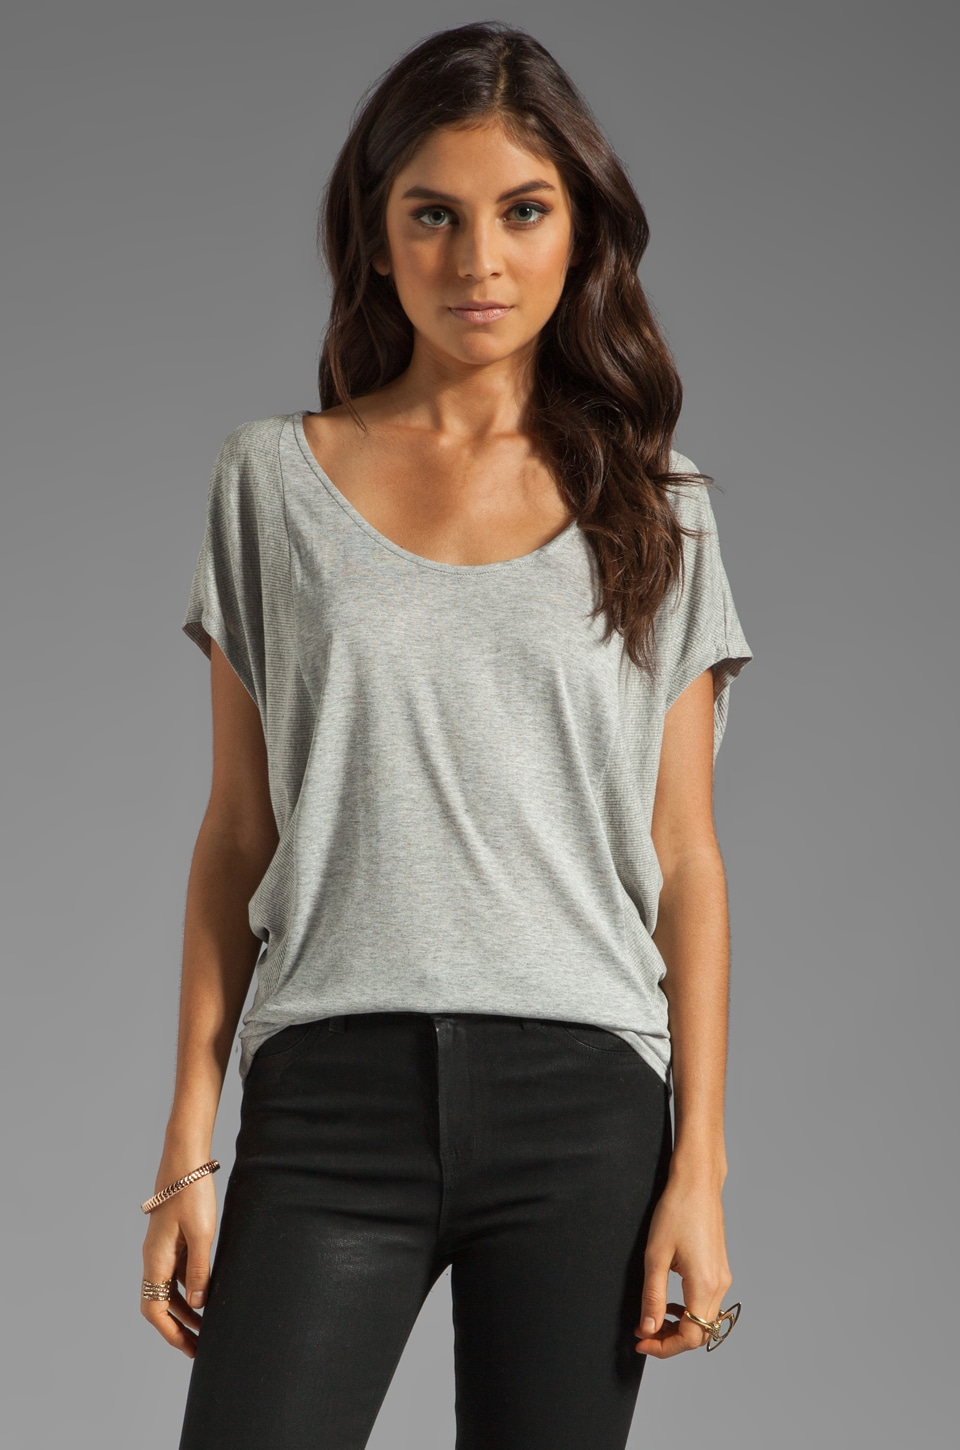 Velvet by Graham & Spencer Melange Drape Elena Top in Sterling